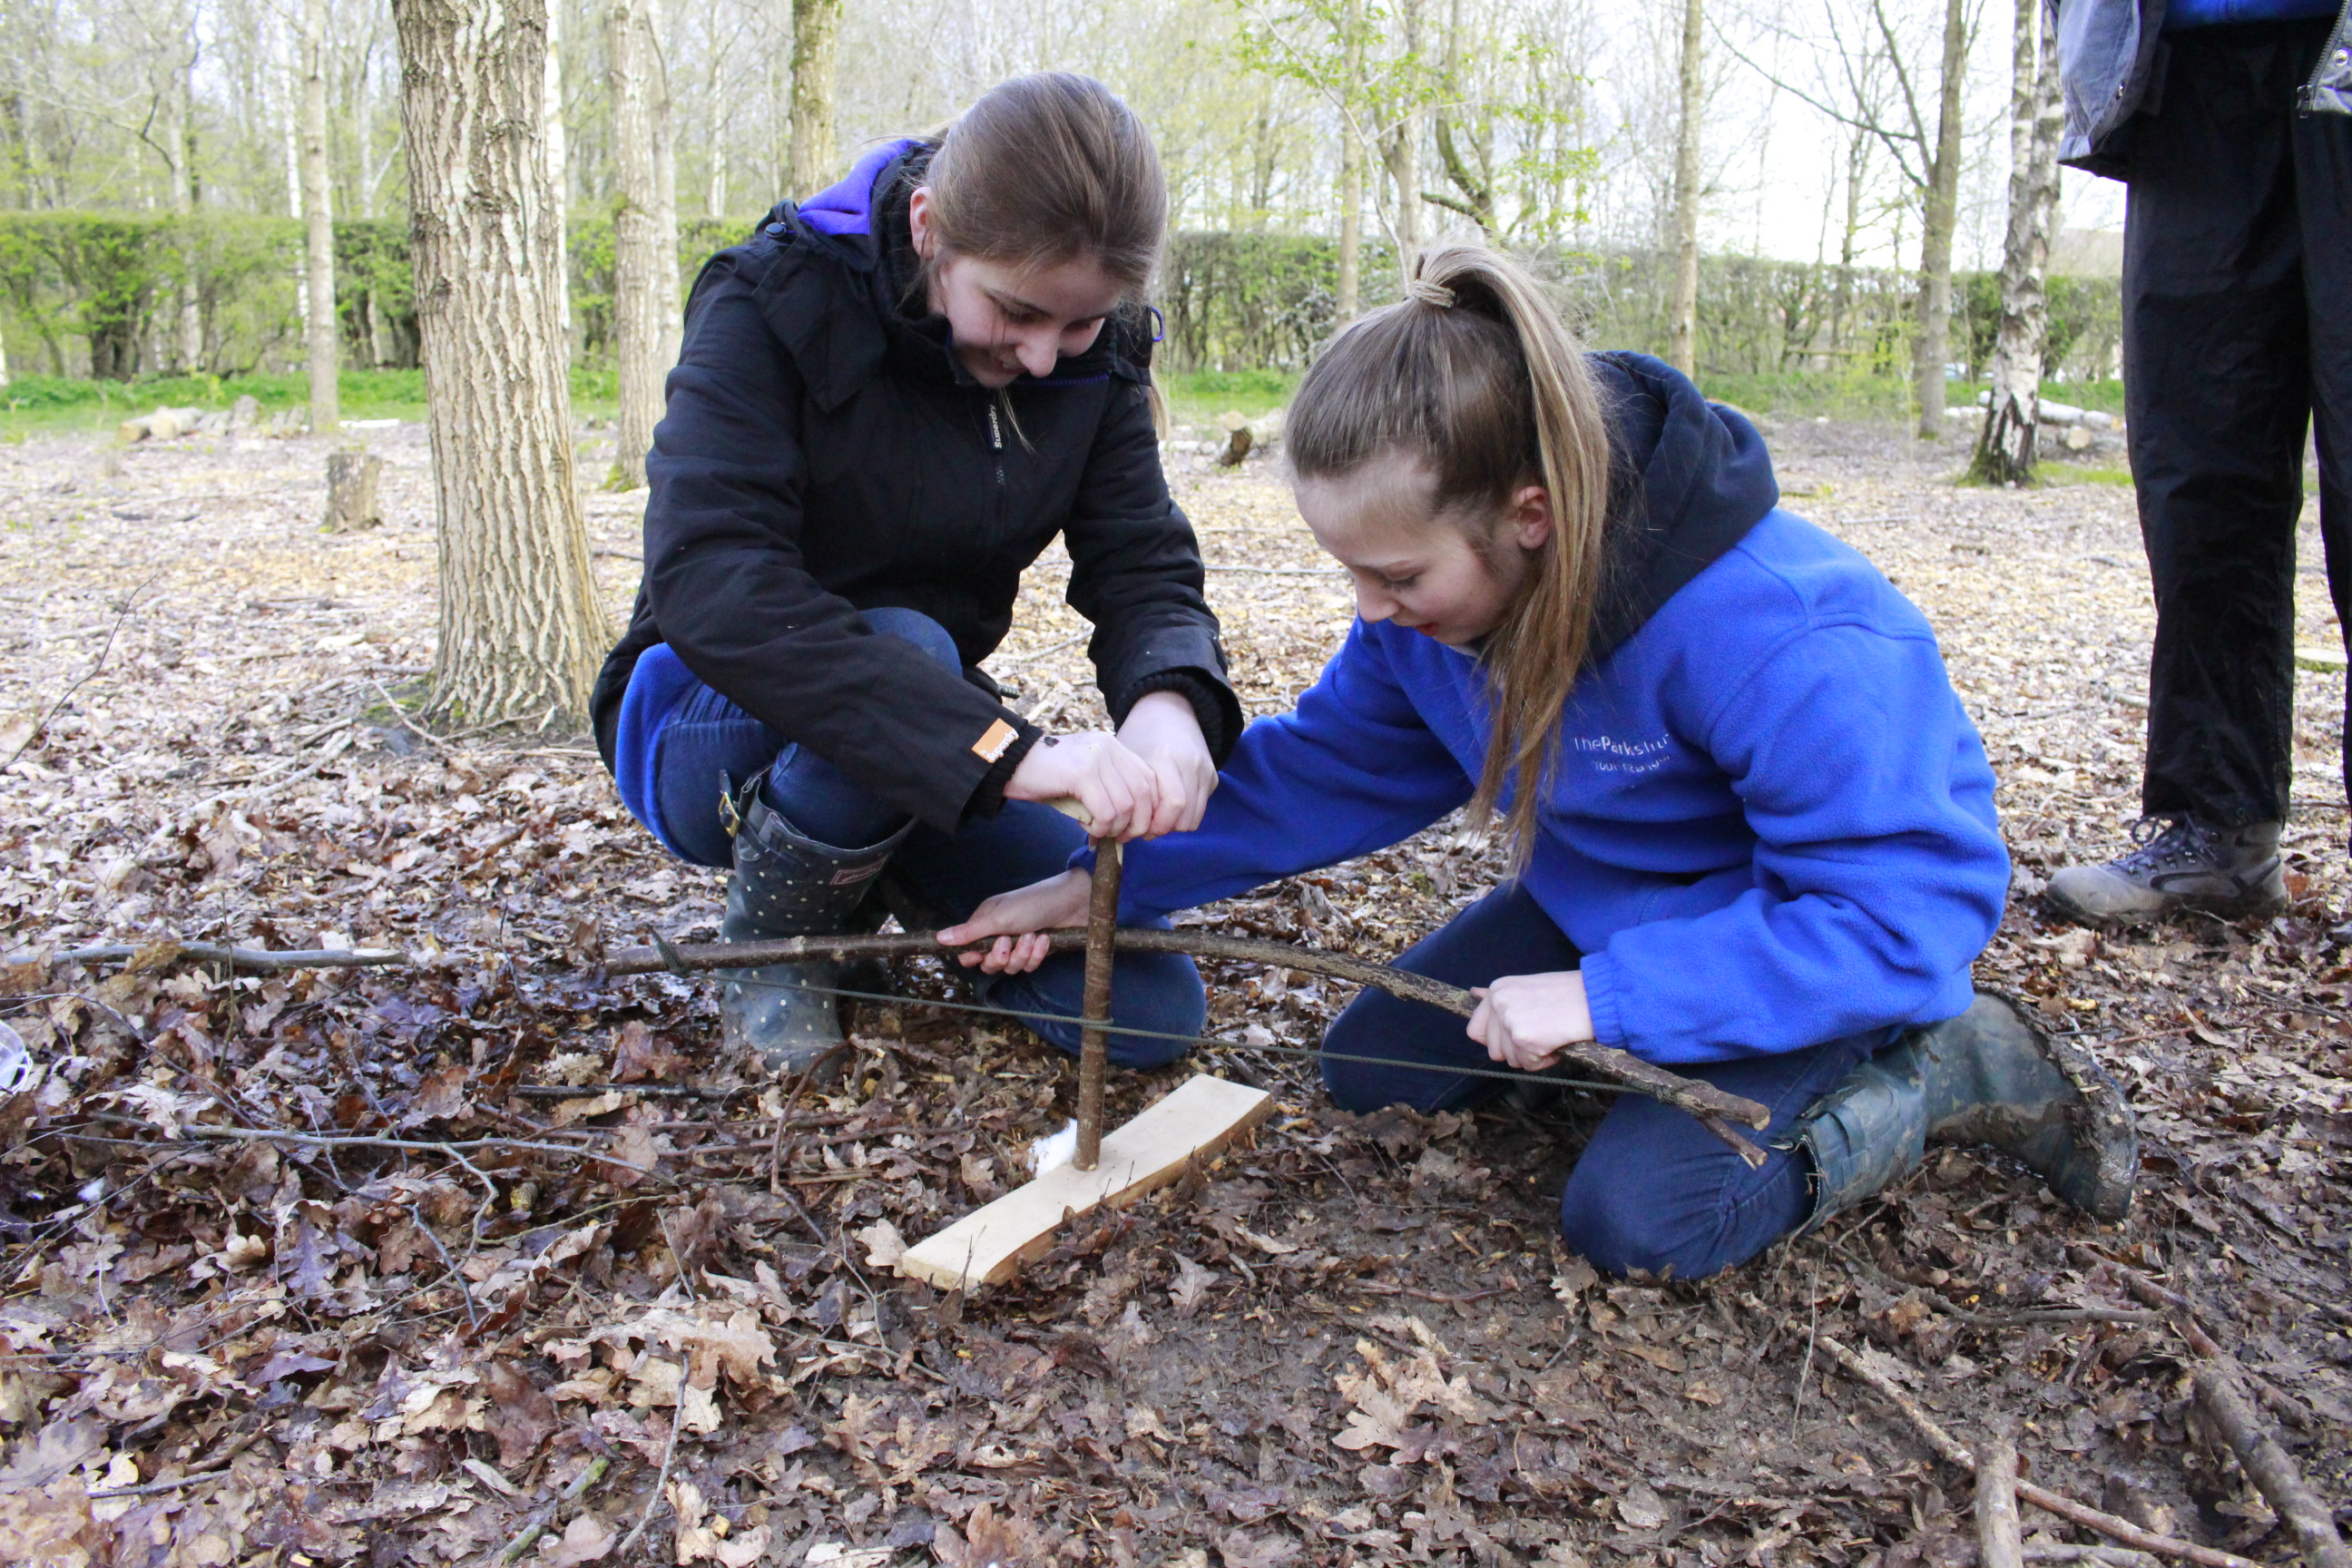 Two girls learning to light a fire using the friction method with a bow and drill